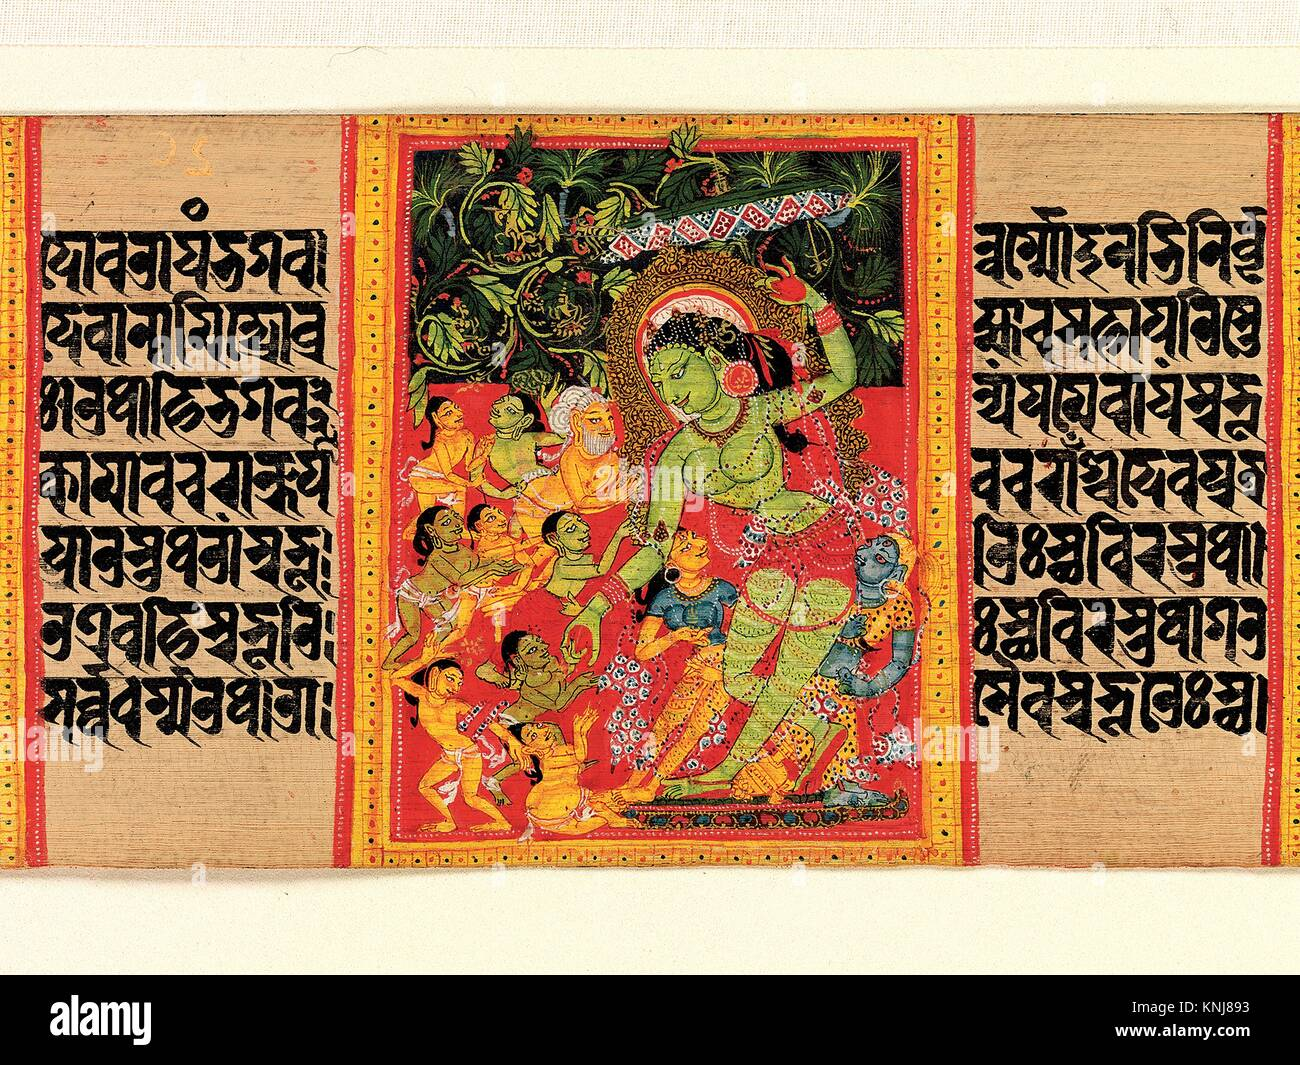 Green Tara Dispensing Boons to Ecstatic Devotees: Folio from a Manuscript of the Ashtasahasrika Prajnaparamita (Perfection - Stock Image